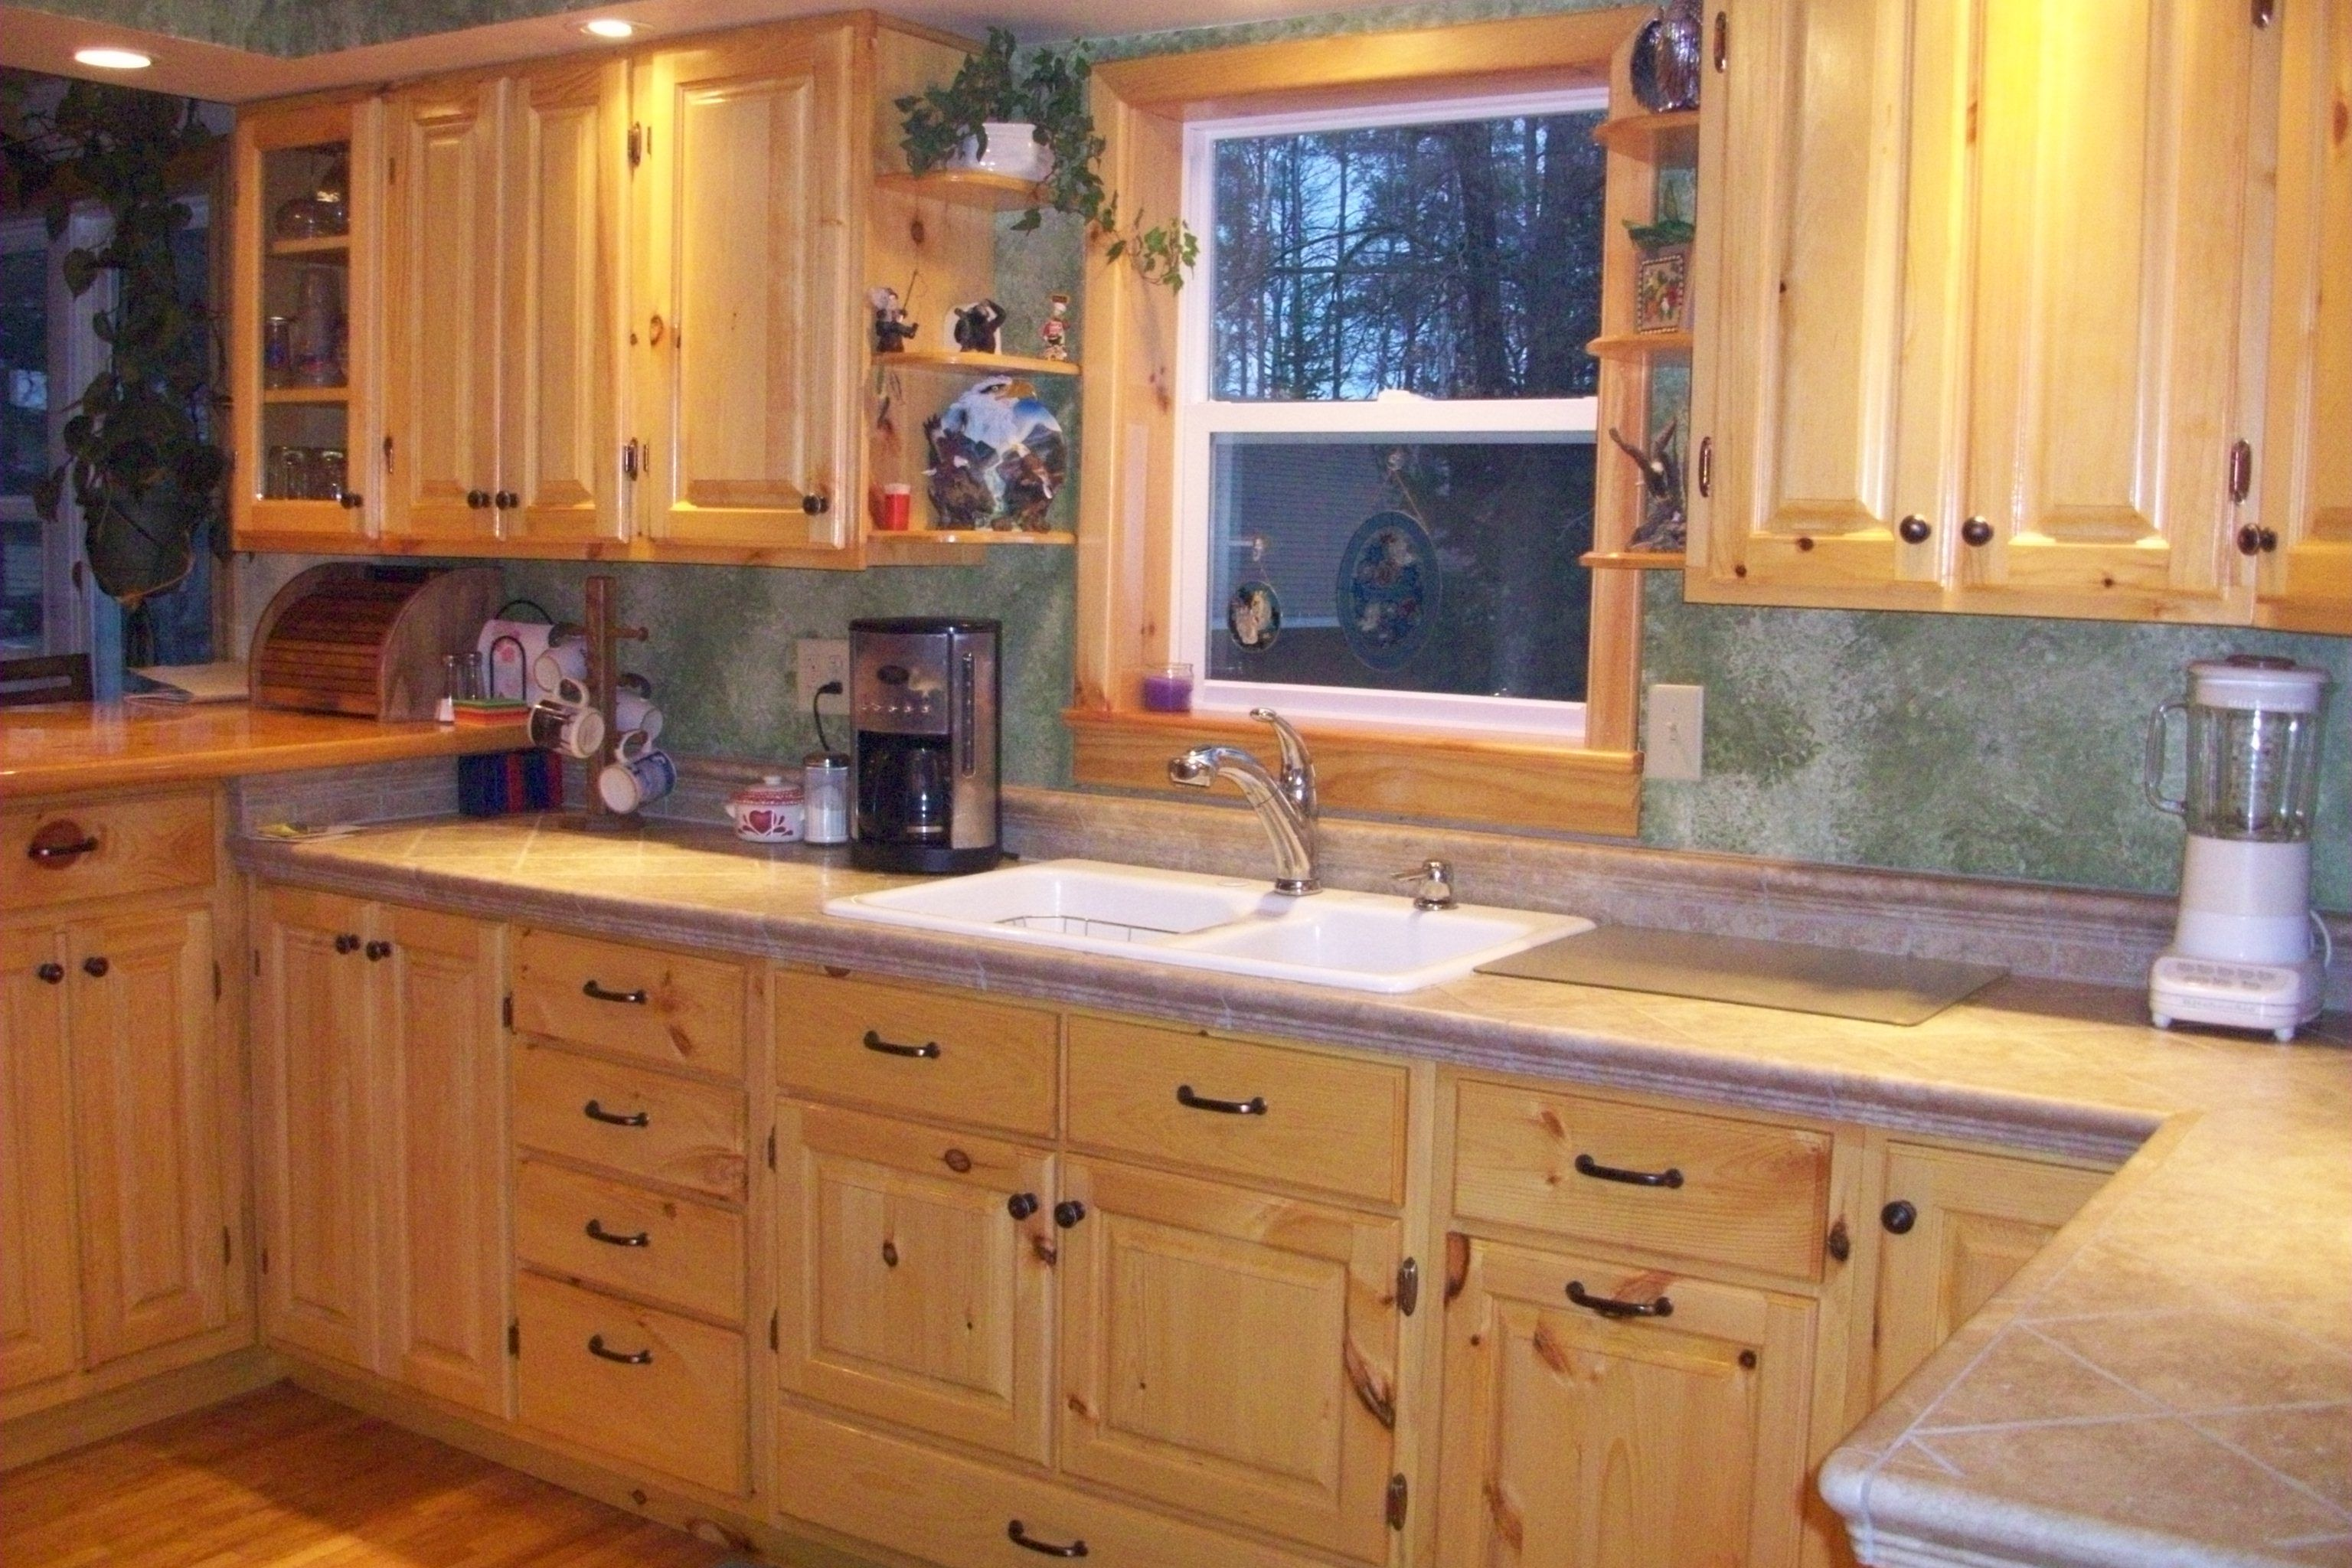 Pin By Charyl Hoover On For The Home Pine Kitchen Cabinets Pine Kitchen Kitchen Cabinet Inspiration